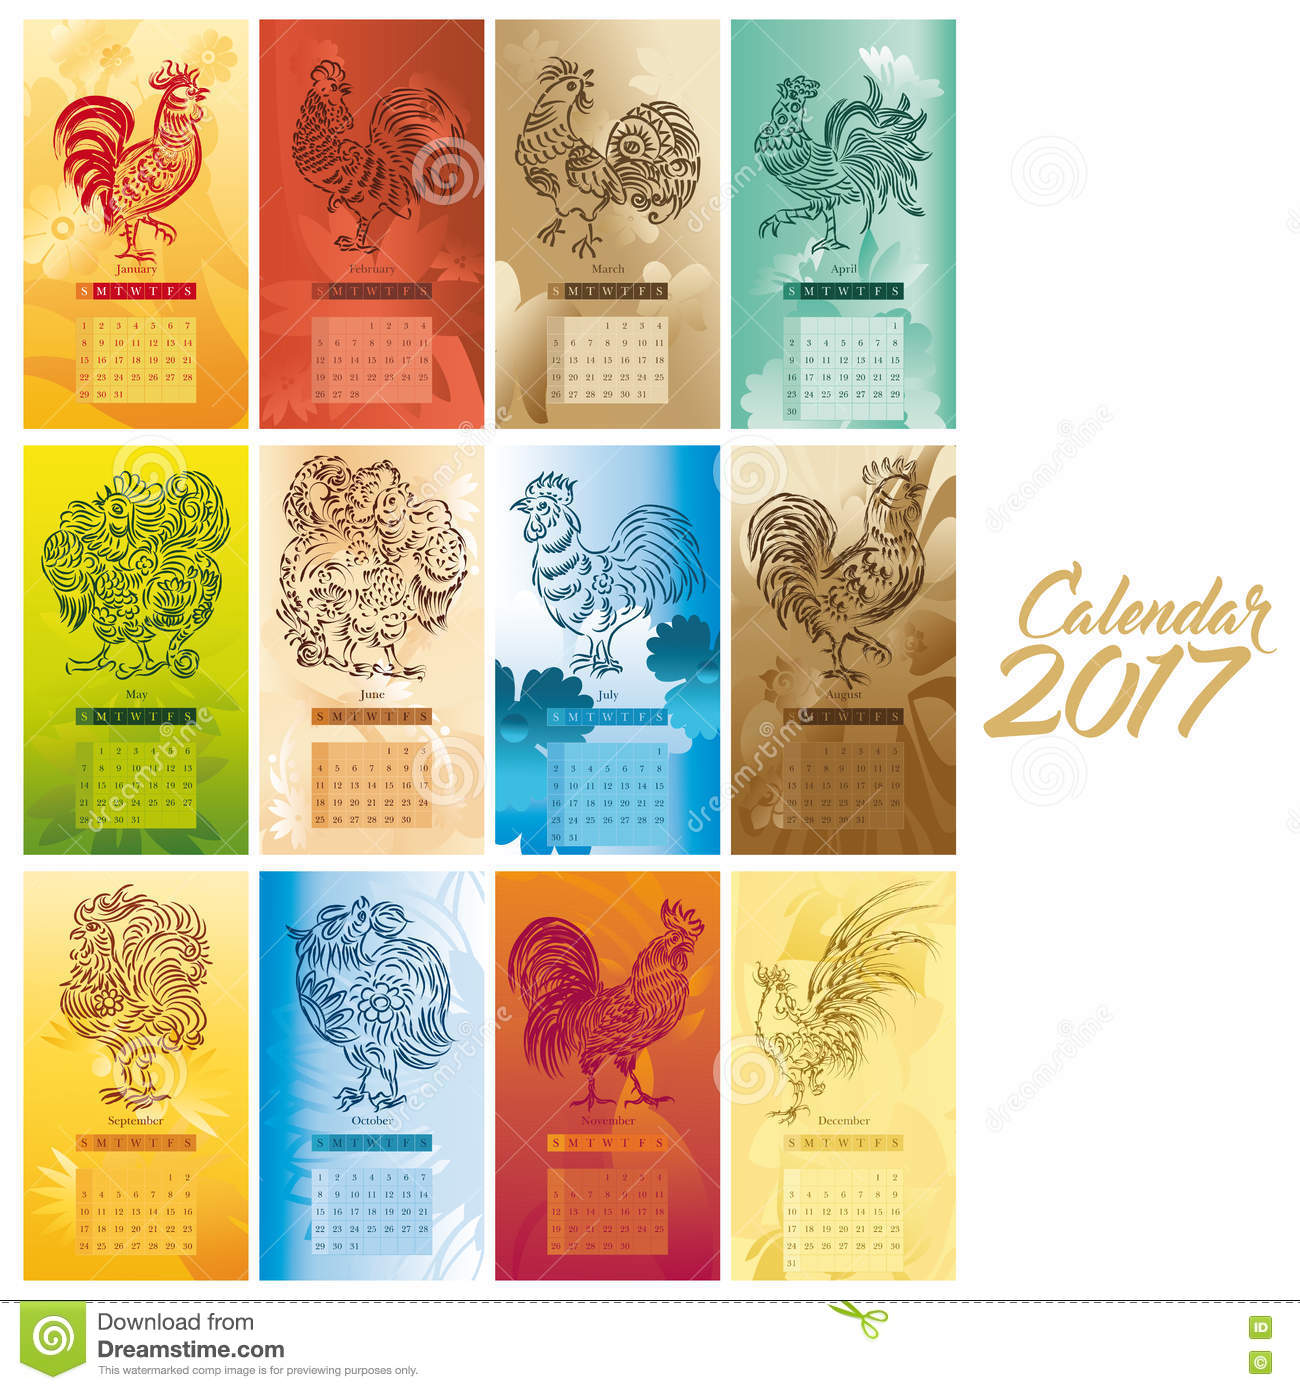 Chinese Calendar Illustration : Calendar artwork stock illustration of